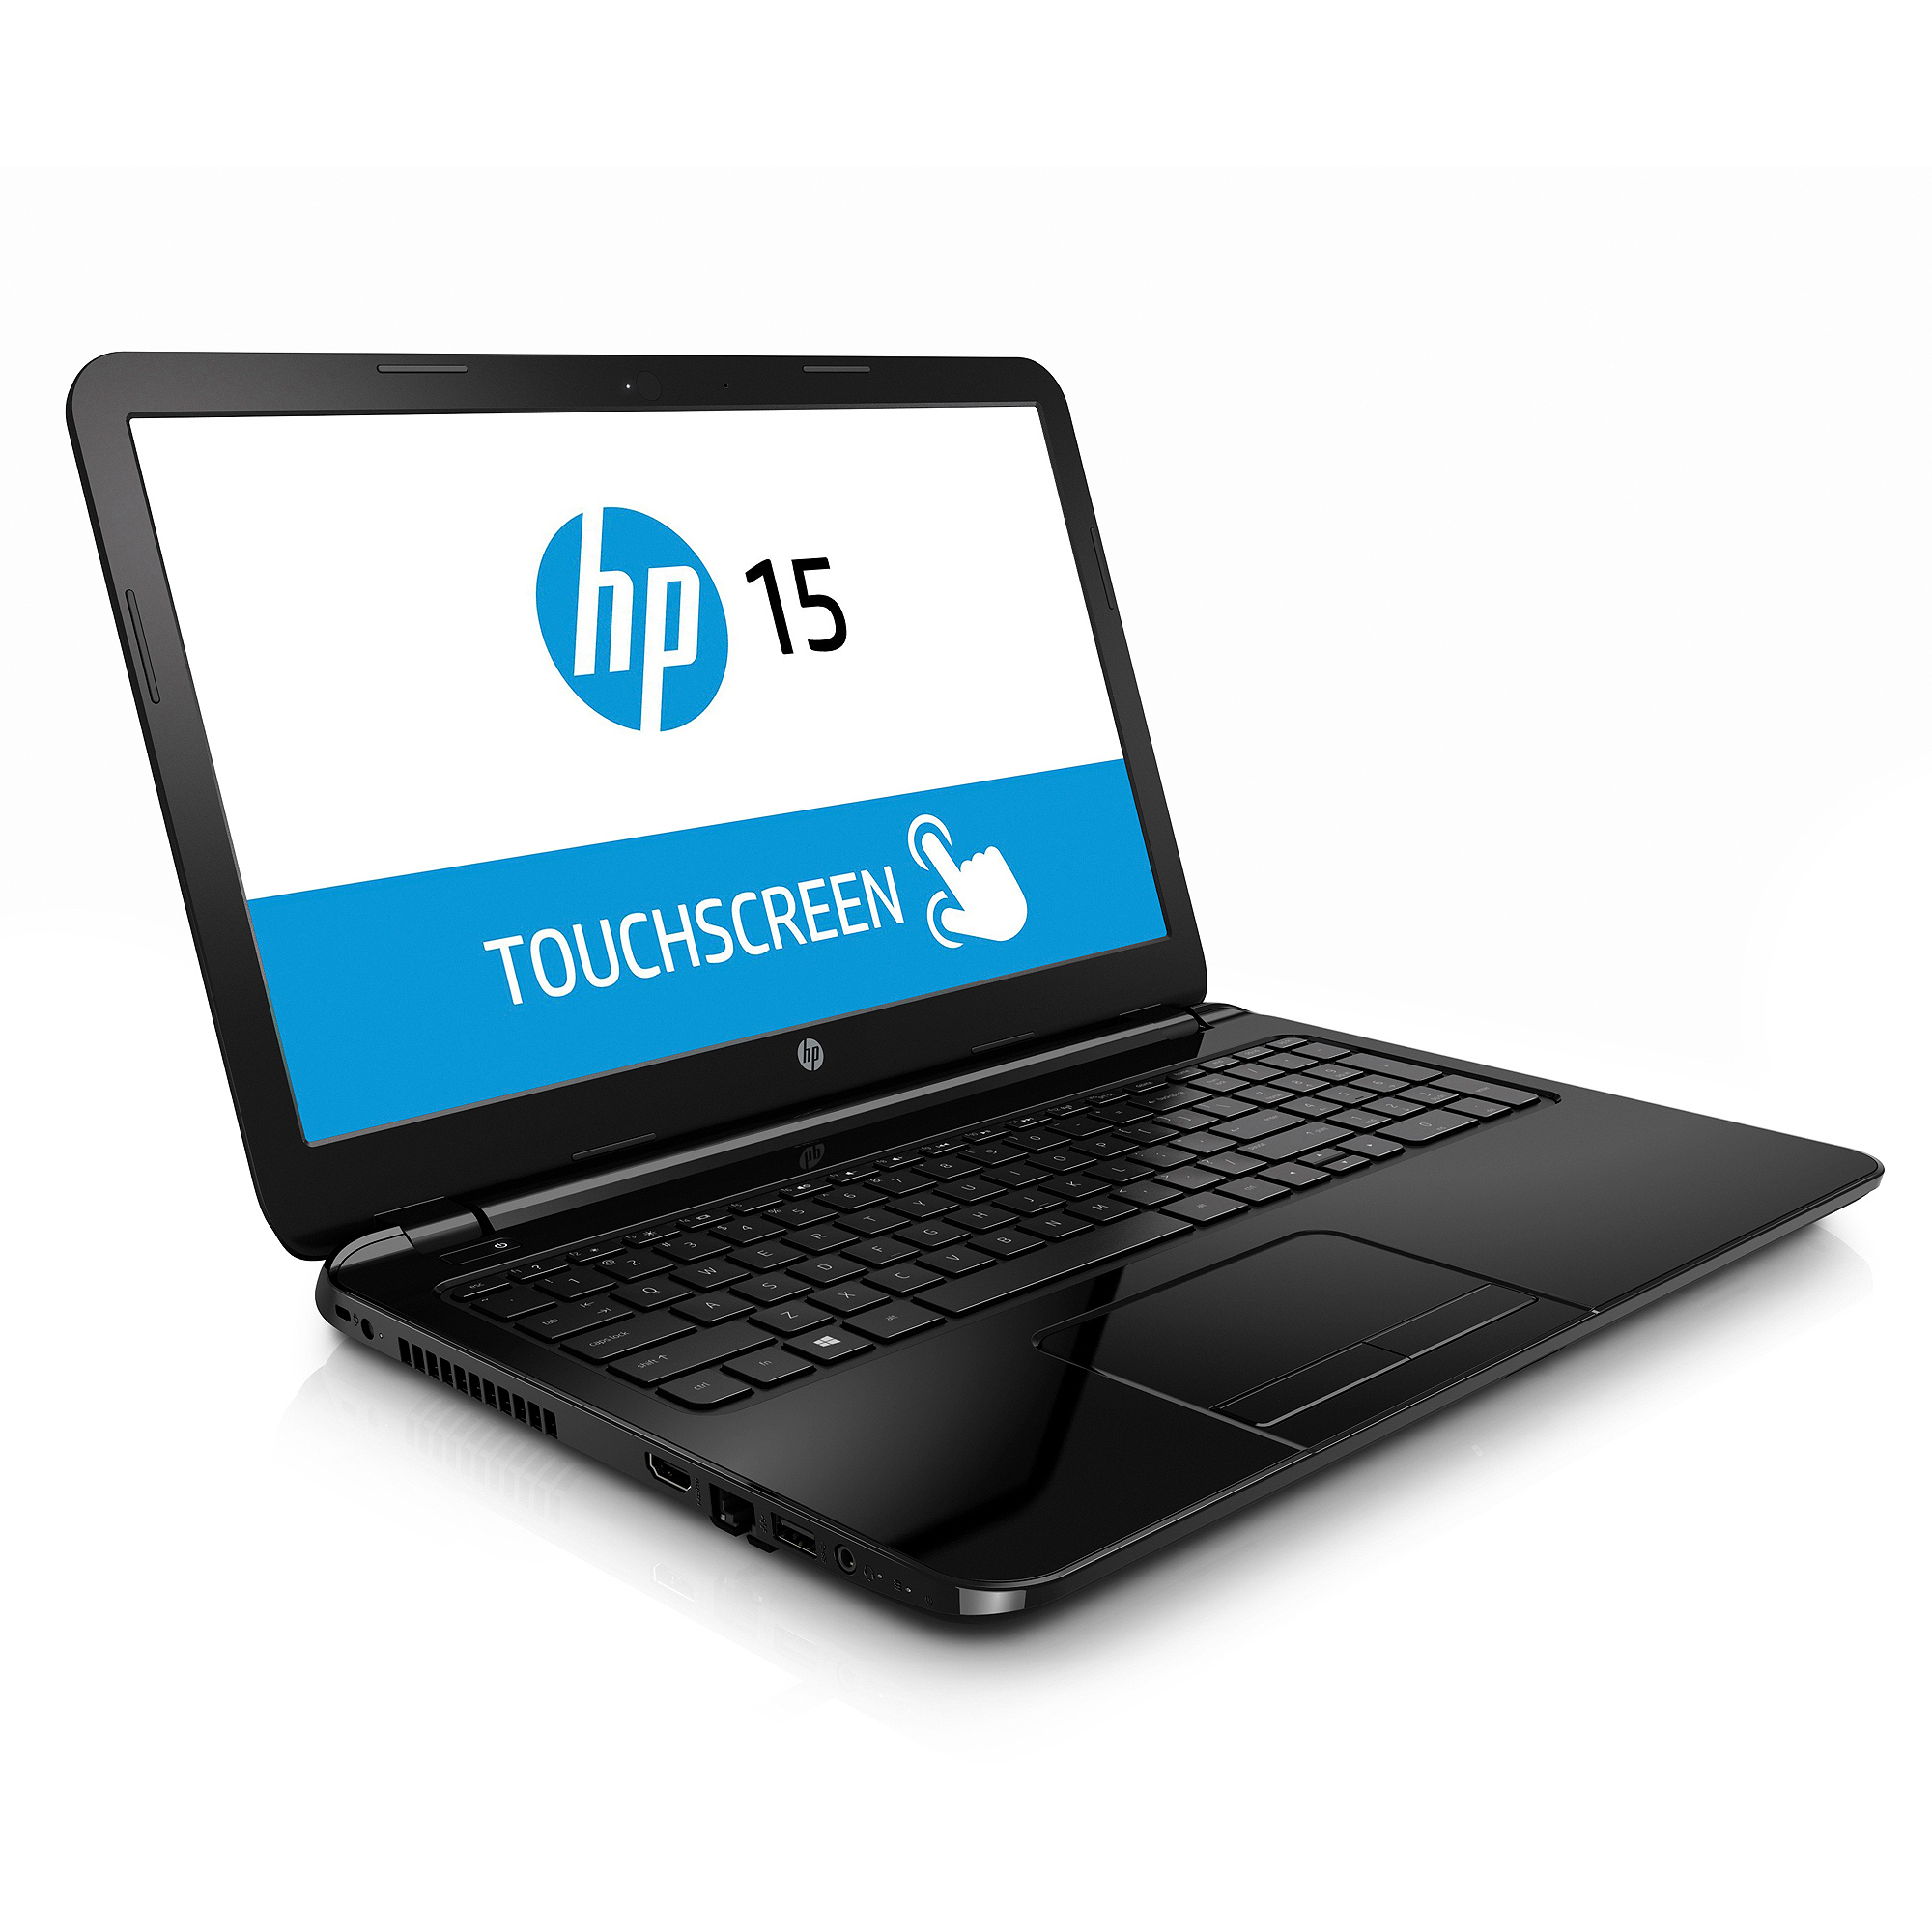 "HP Black Licorice 15.6"" Touch 15-g059wm Laptop PC with AMD Quad-Core A8-6410 Processor, 4GB Memory, touch screen, 750GB Hard Drive and Windows 8.1  (Free Windows 10 Upgrade before July 29, 2016)"